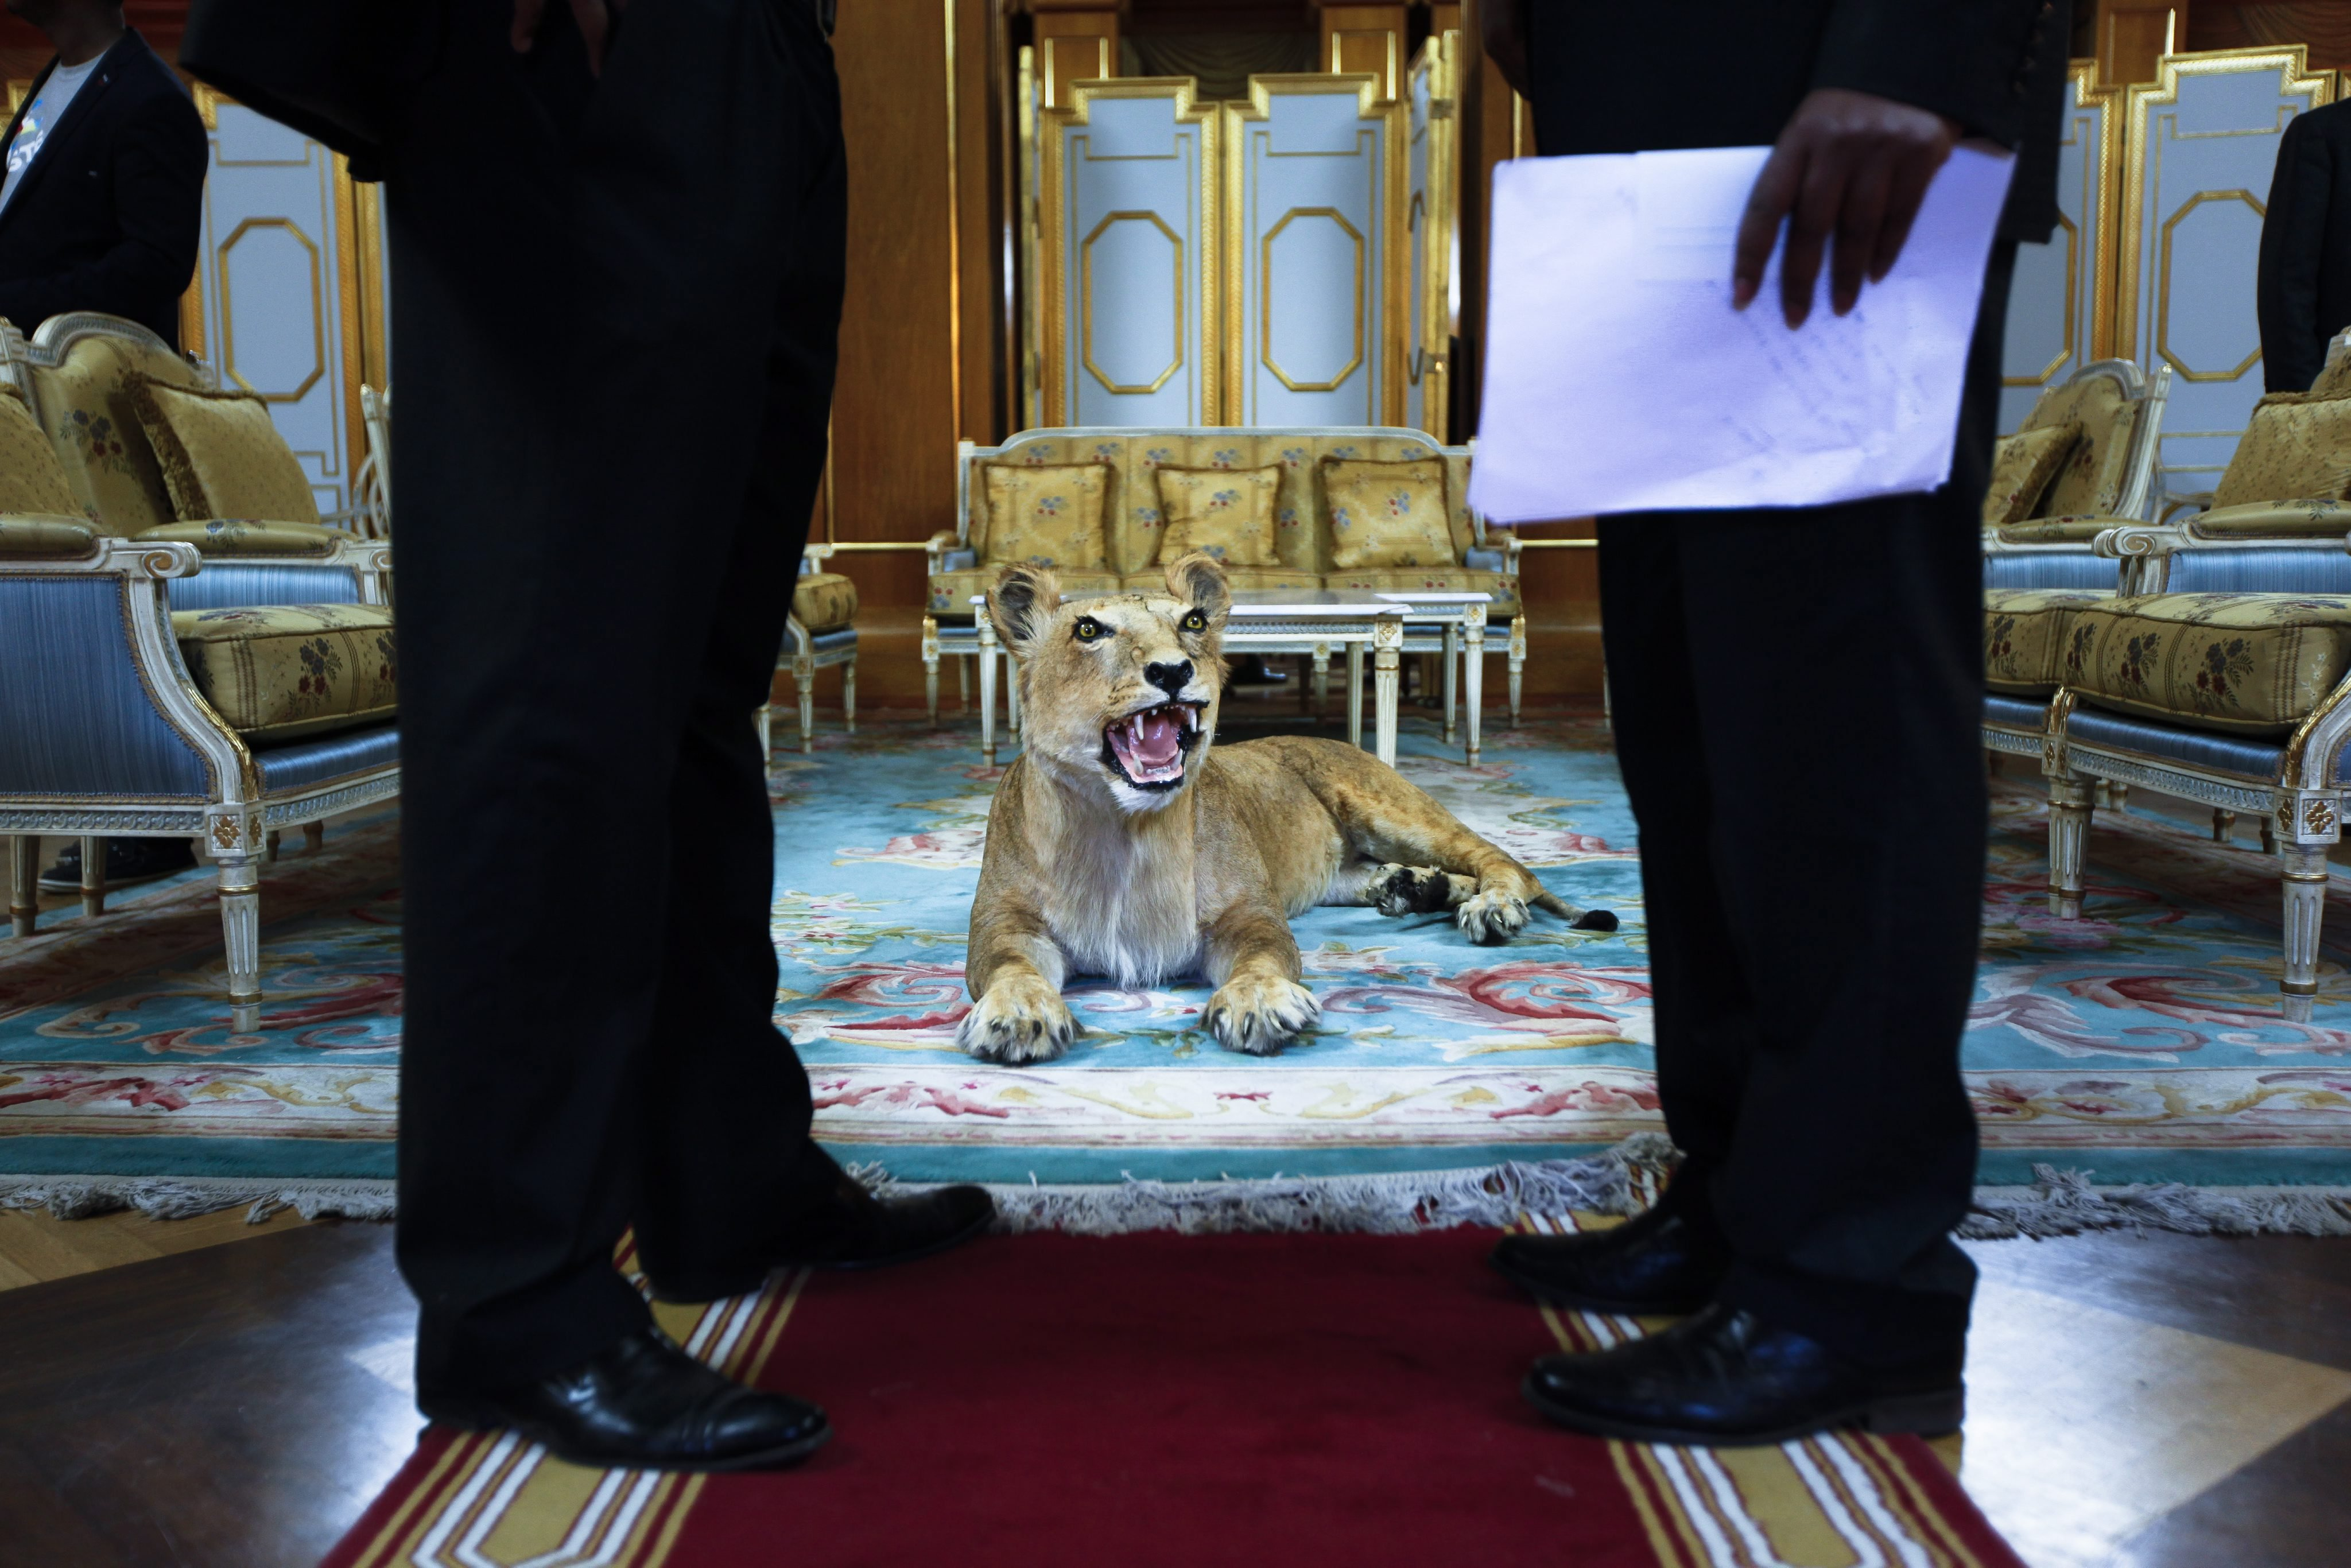 A stuffed lion on display is seen between two Ethiopian officials prior to a meeting between Japanese Prime Minister, Shinzo Abe, and his Ethiopian counterpart, Hailemariam Desalegn, at the Presidential Palace in Addis Ababa, Ethiopia, Jan. 13,2014.